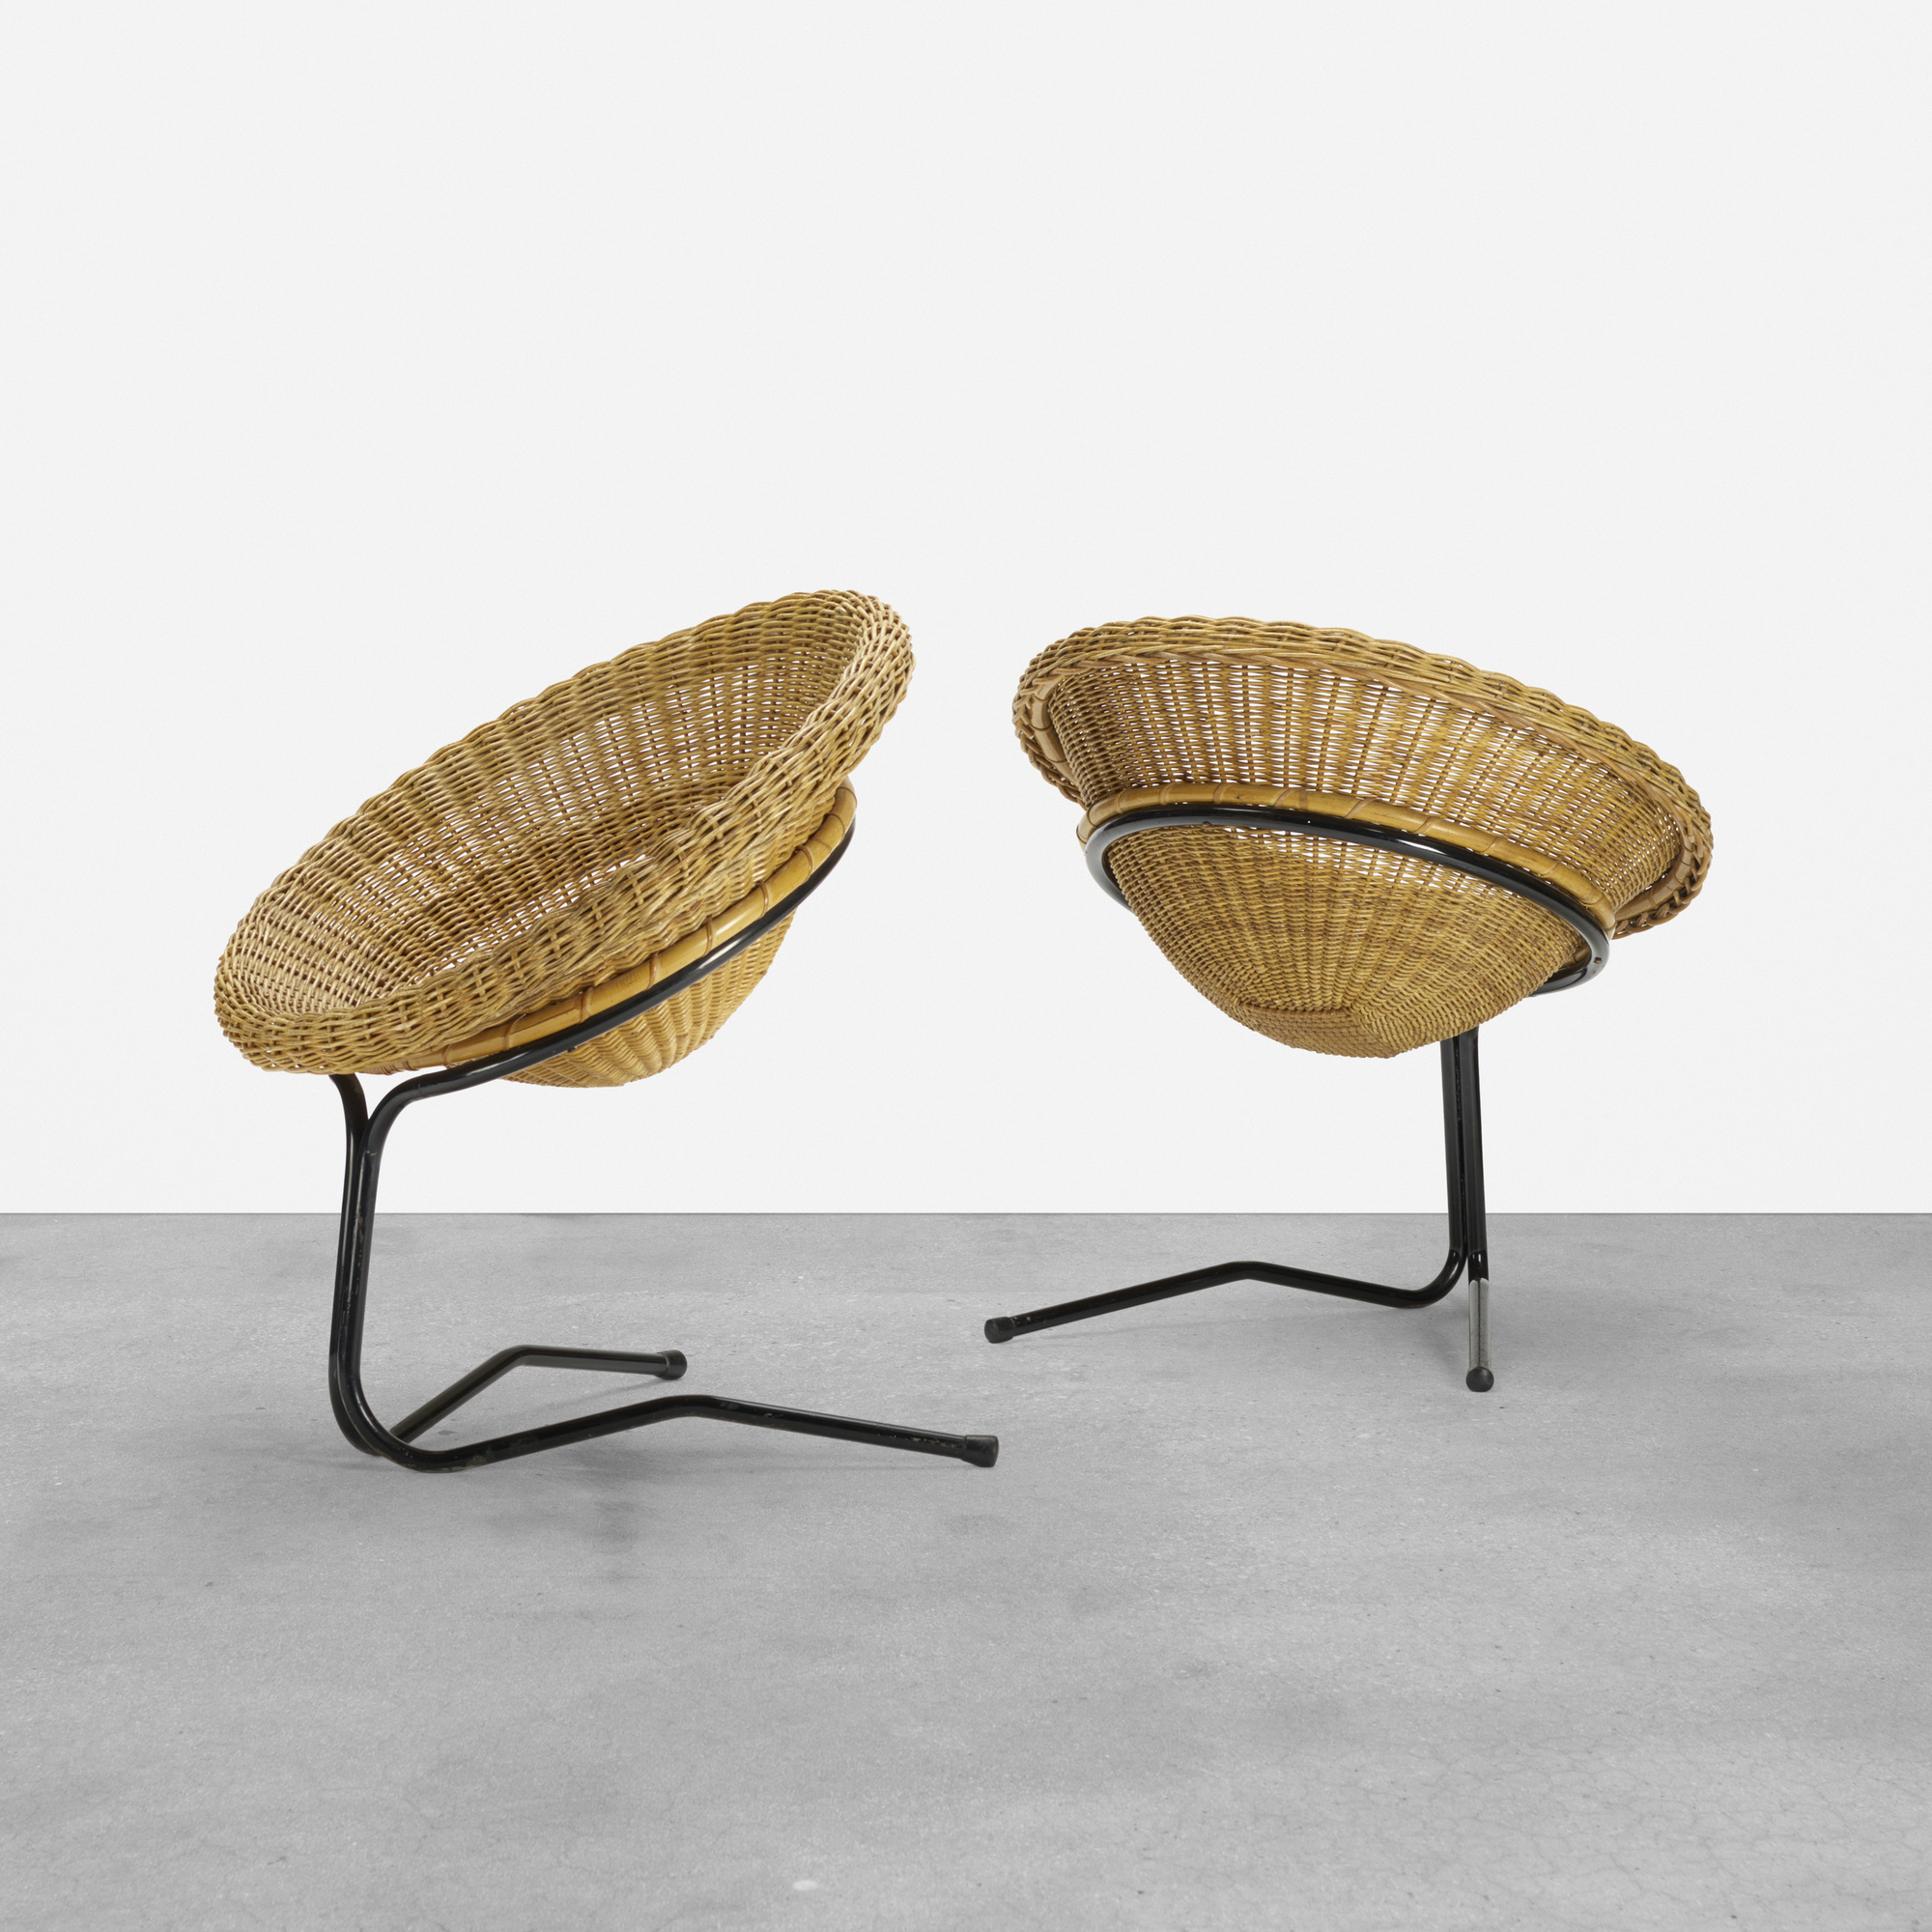 381: Arnold Bueno de Mesquita / pair of cantilever chairs (1 of 4)